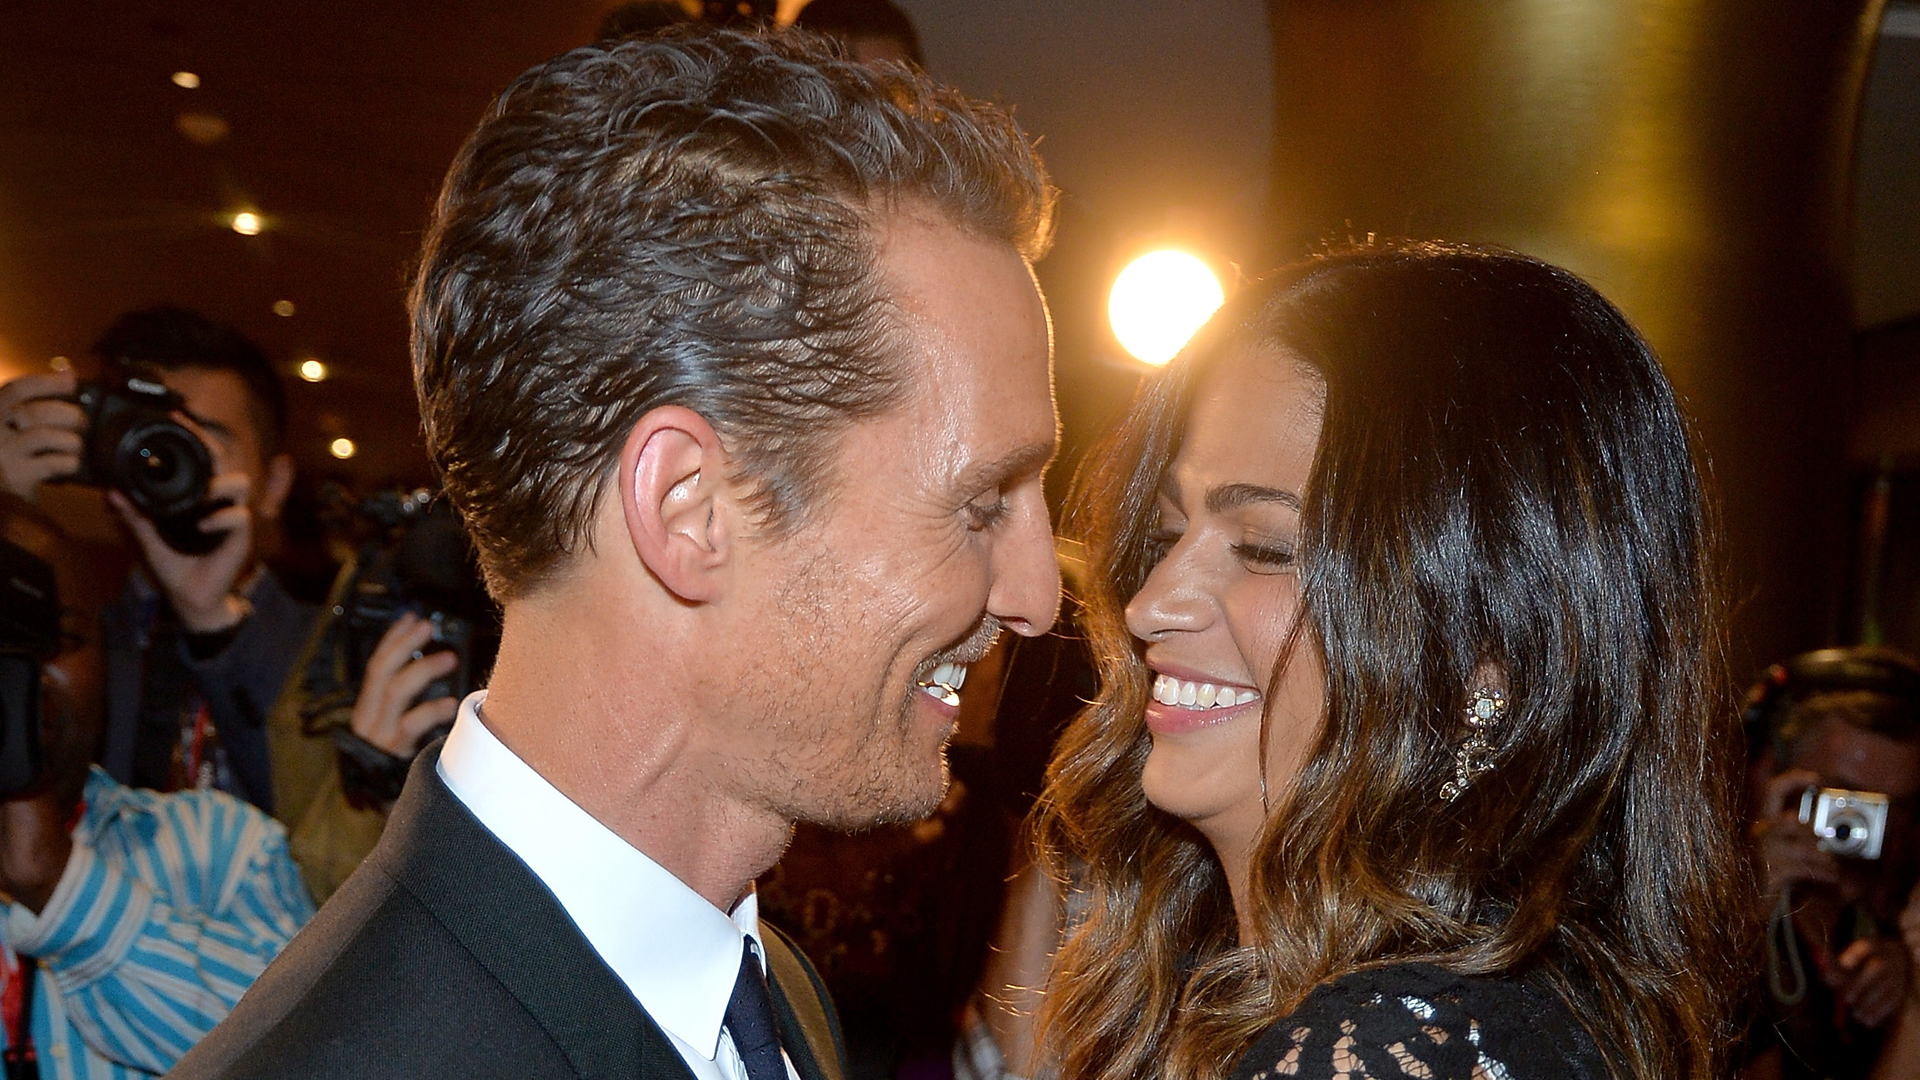 Matthew Mcconaughey Wife Wasn T Too Fond Of Weight Loss For Dallas Variety